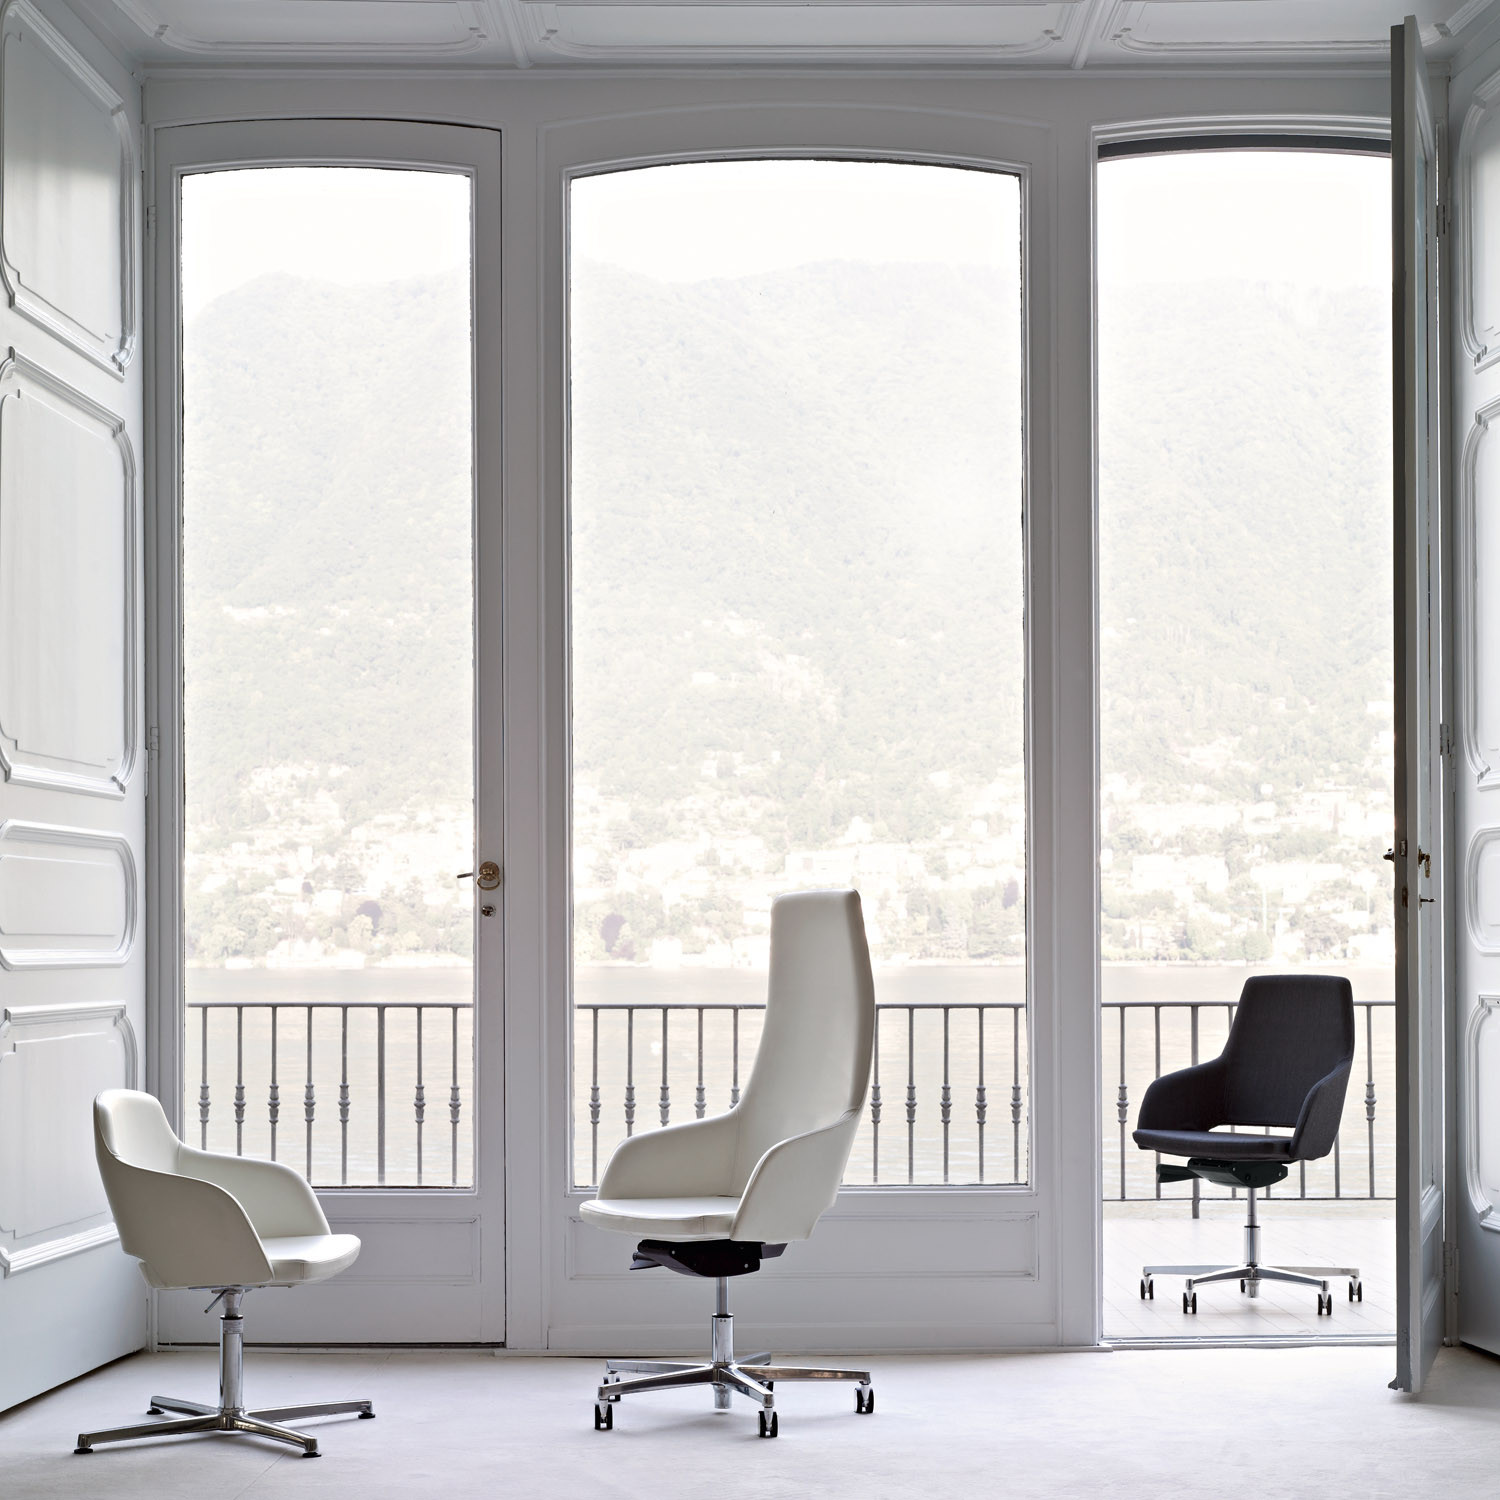 Sinetica Captain Design Chairs